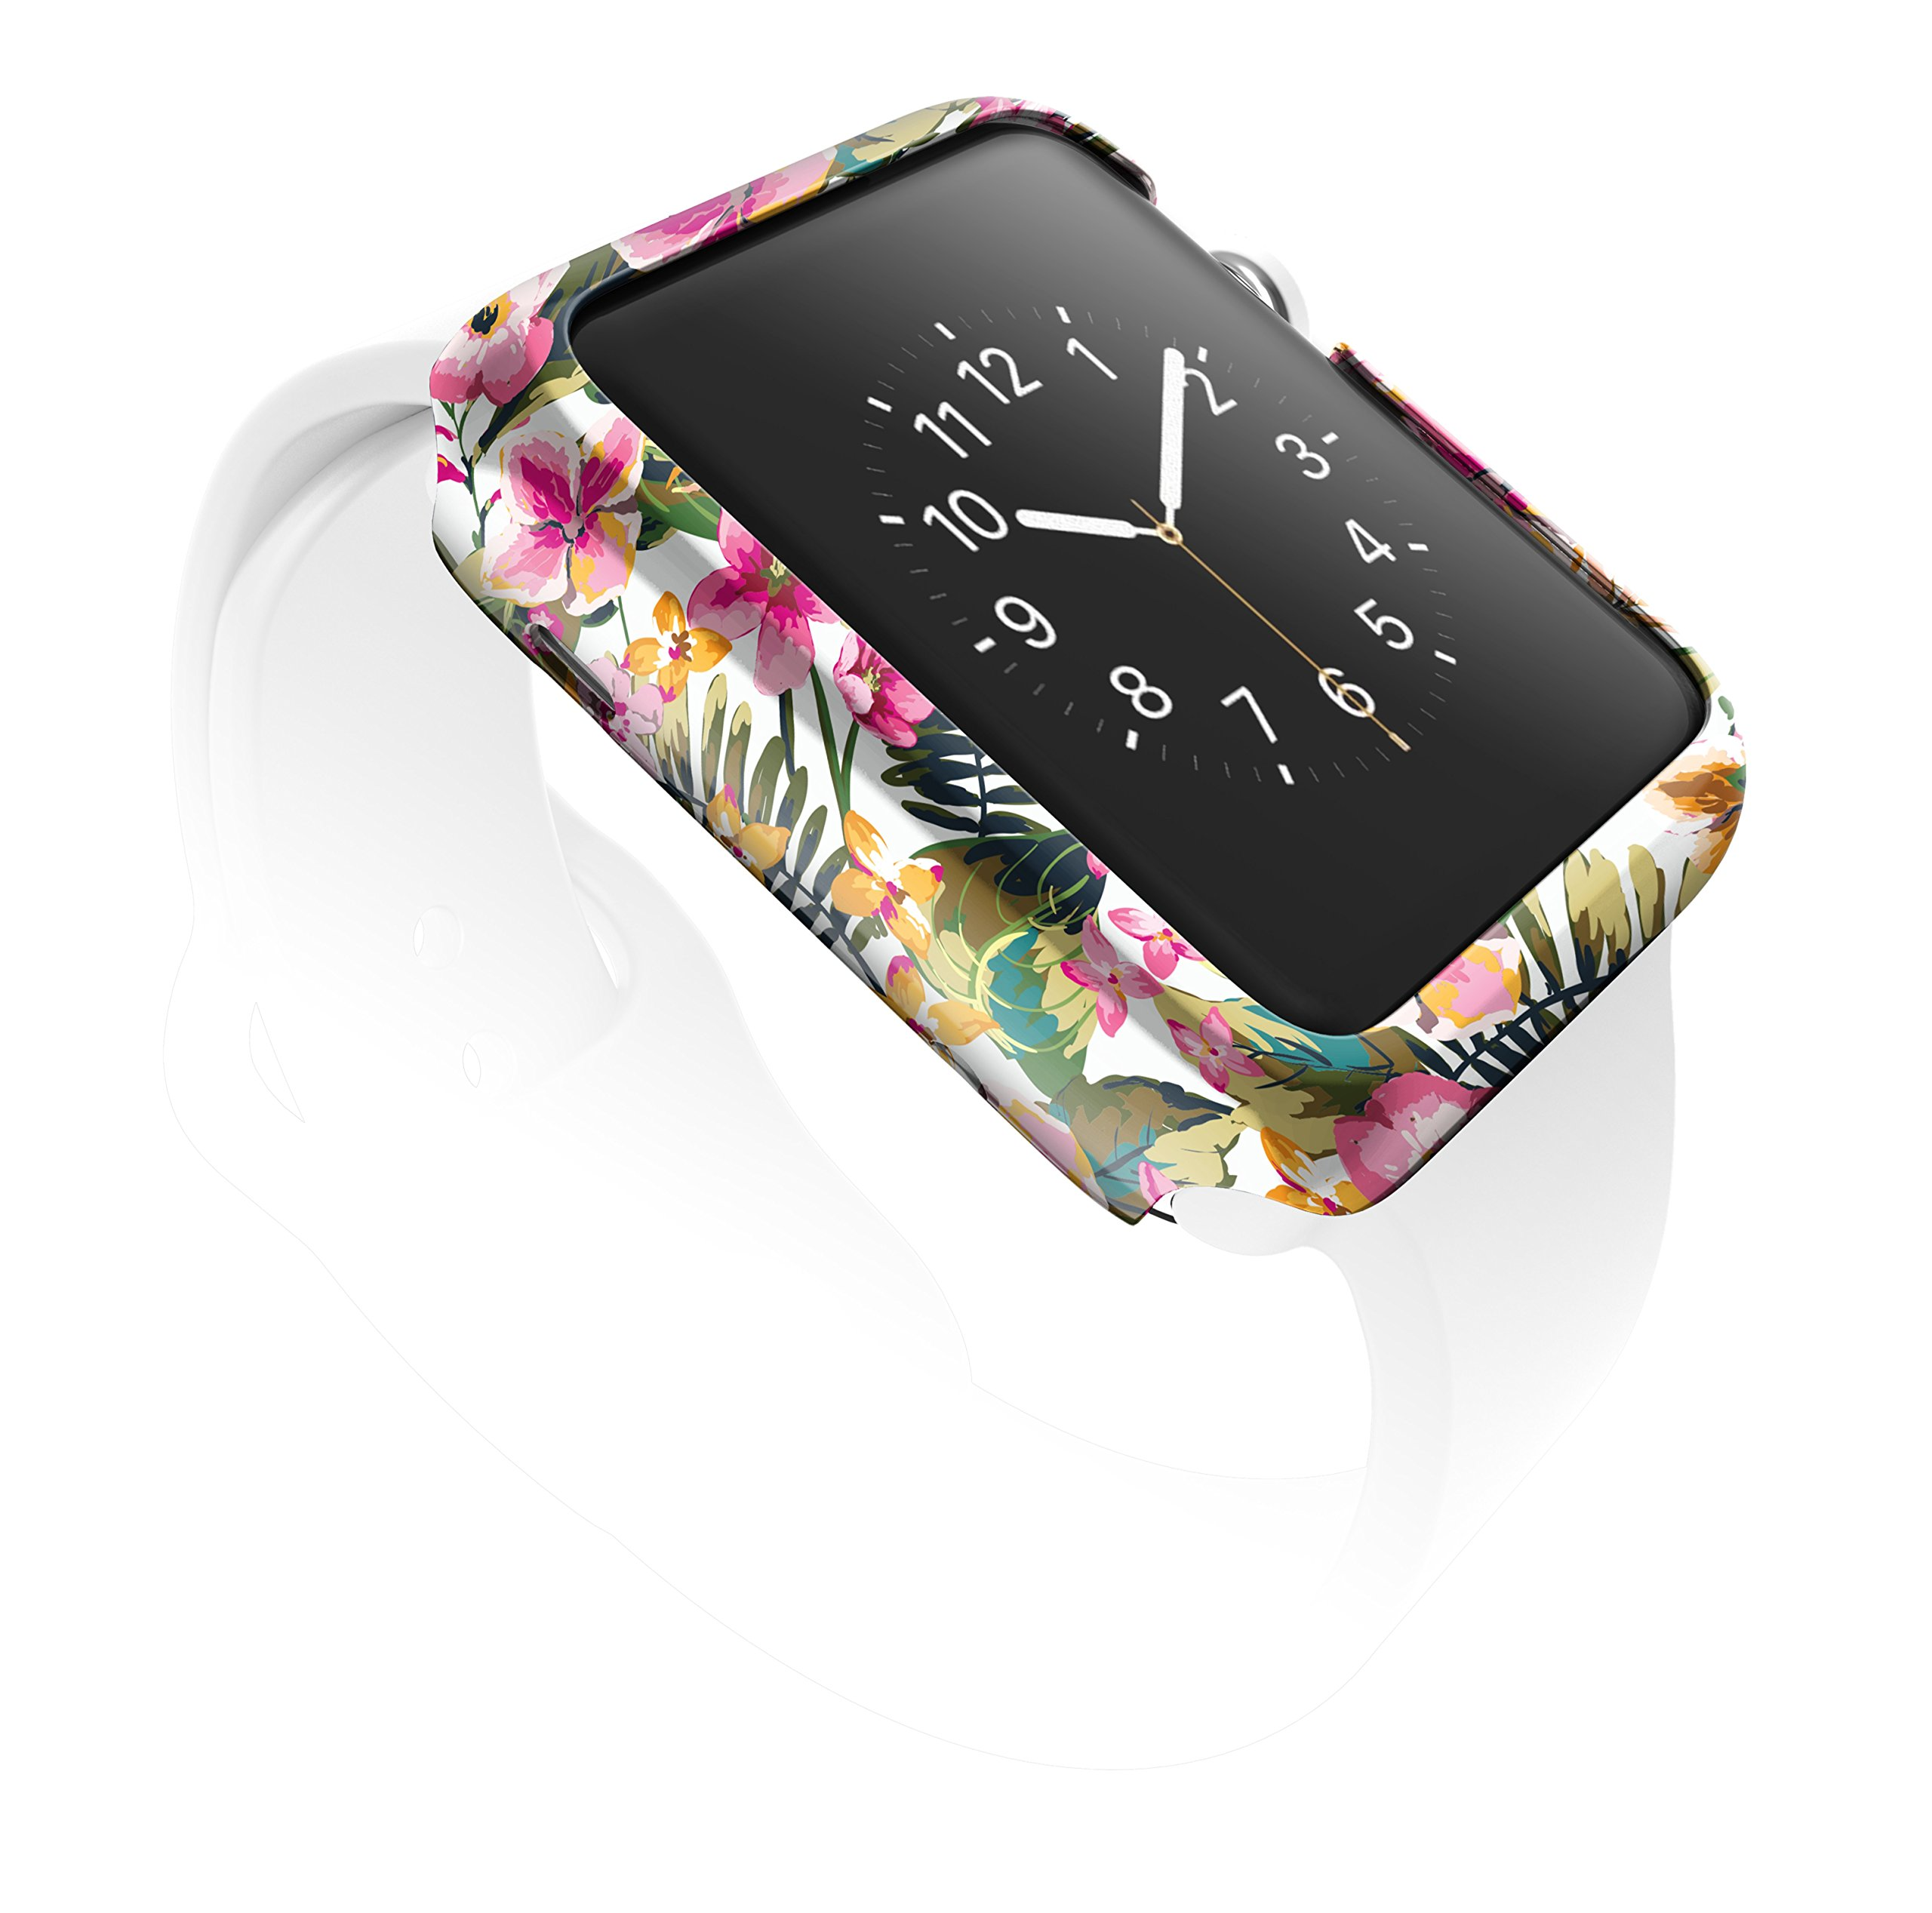 X-Doria 38mm Apple Watch Case (Revel Bumper) Fashion Case (Floral Palm) - Compatible with Apple Watch Series 1, Series 2, Series 3 and Nike+